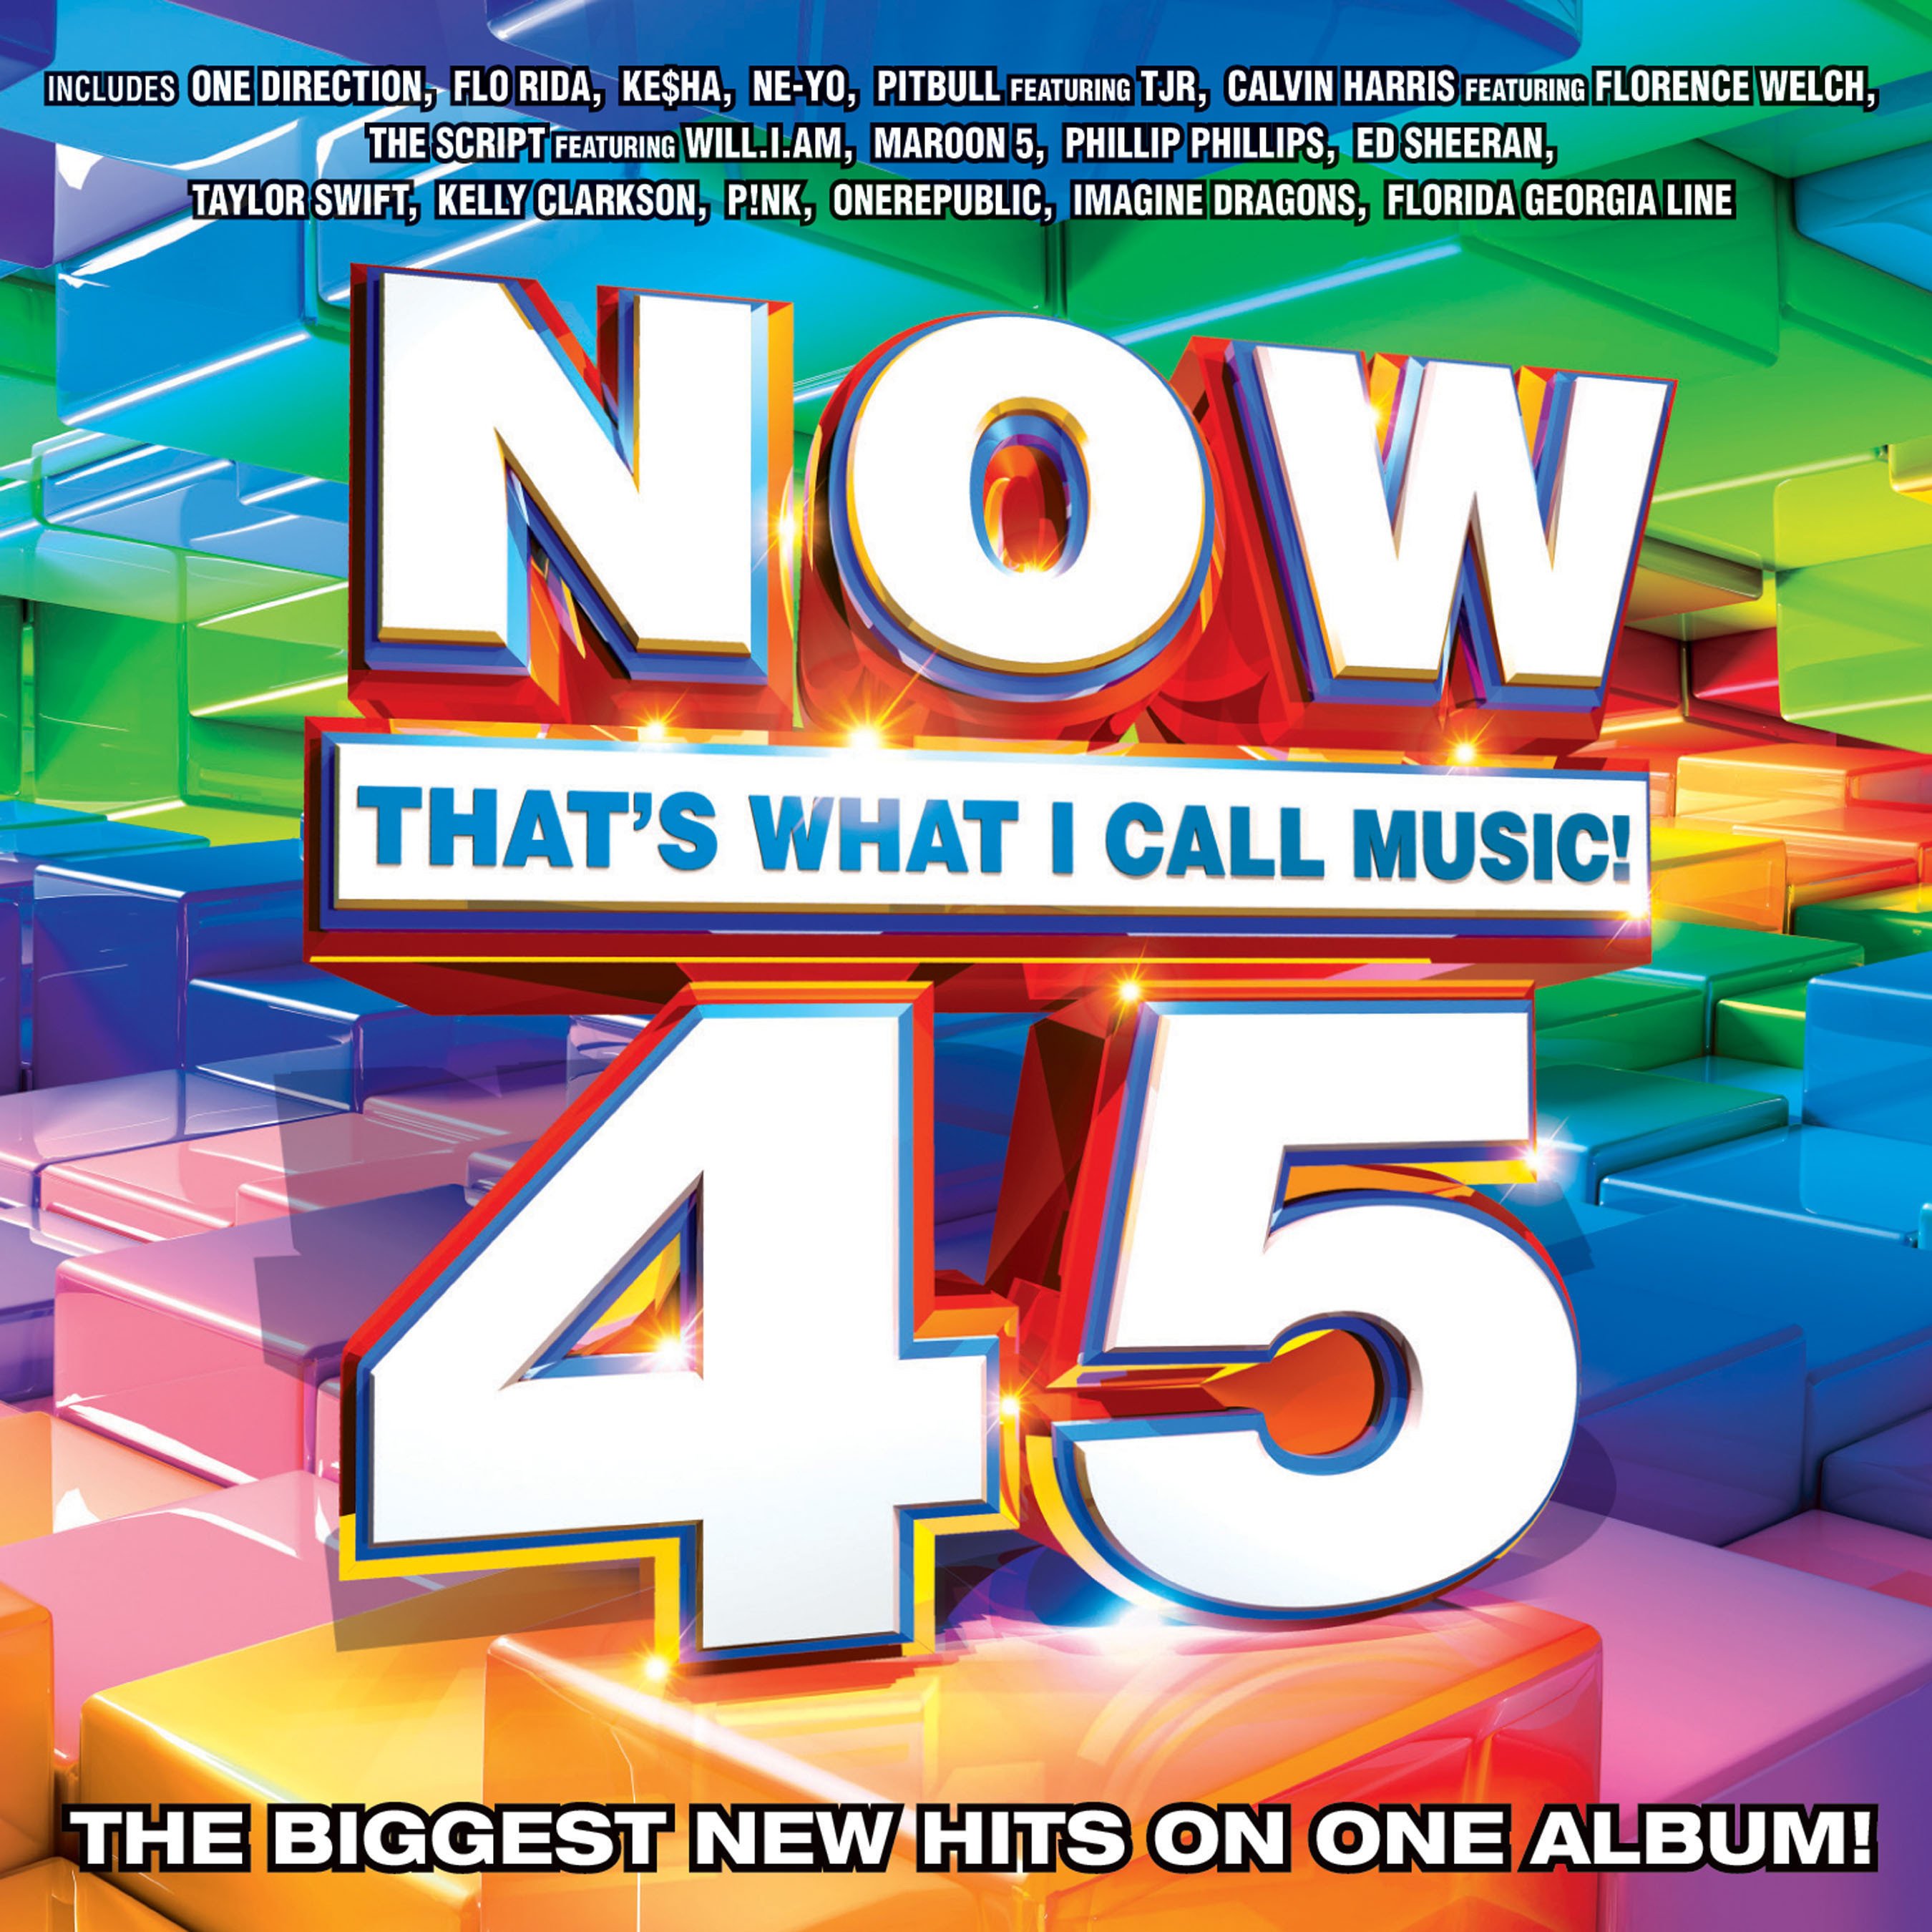 """The world's best-selling, multi-artist album series, NOW That's What I Call Music!, has gathered today's biggest hits for NOW That's What I Call Music! Vol. 45, to be released February 5. NOW 45 will be available on CD and for download purchase from all major digital service providers. NOW That's What I Call Music! Vol. 45 features 16 major current hits from today's hottest artists, plus four free up-and-coming """"NOW What's Next"""" New Music Preview tracks. www.nowthatsmusic.com.  (PRNewsFoto/EMI Music / Sony Music Entertainment / Universal Music Group)"""